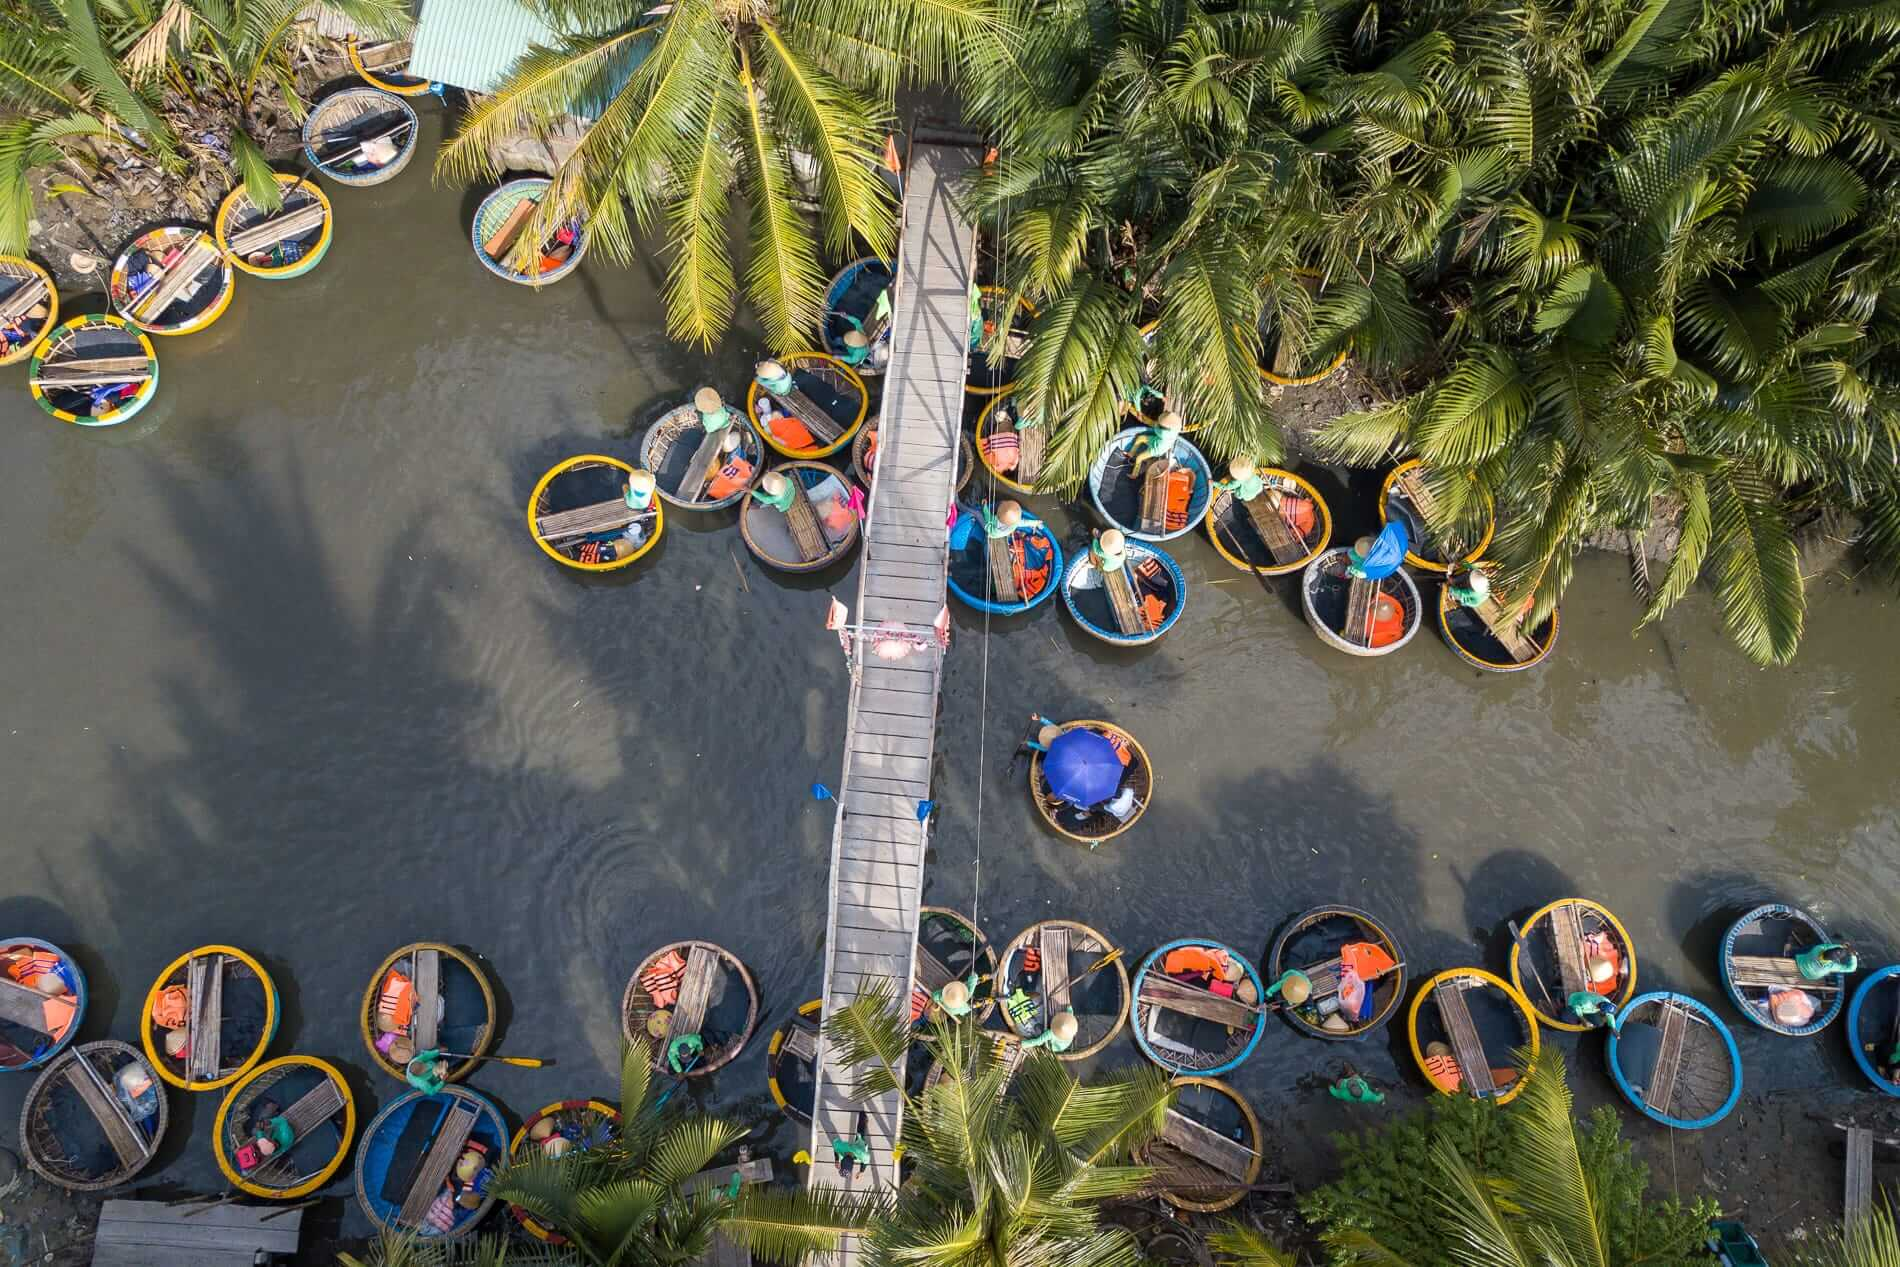 the Coconut Boat Village in Hoi An